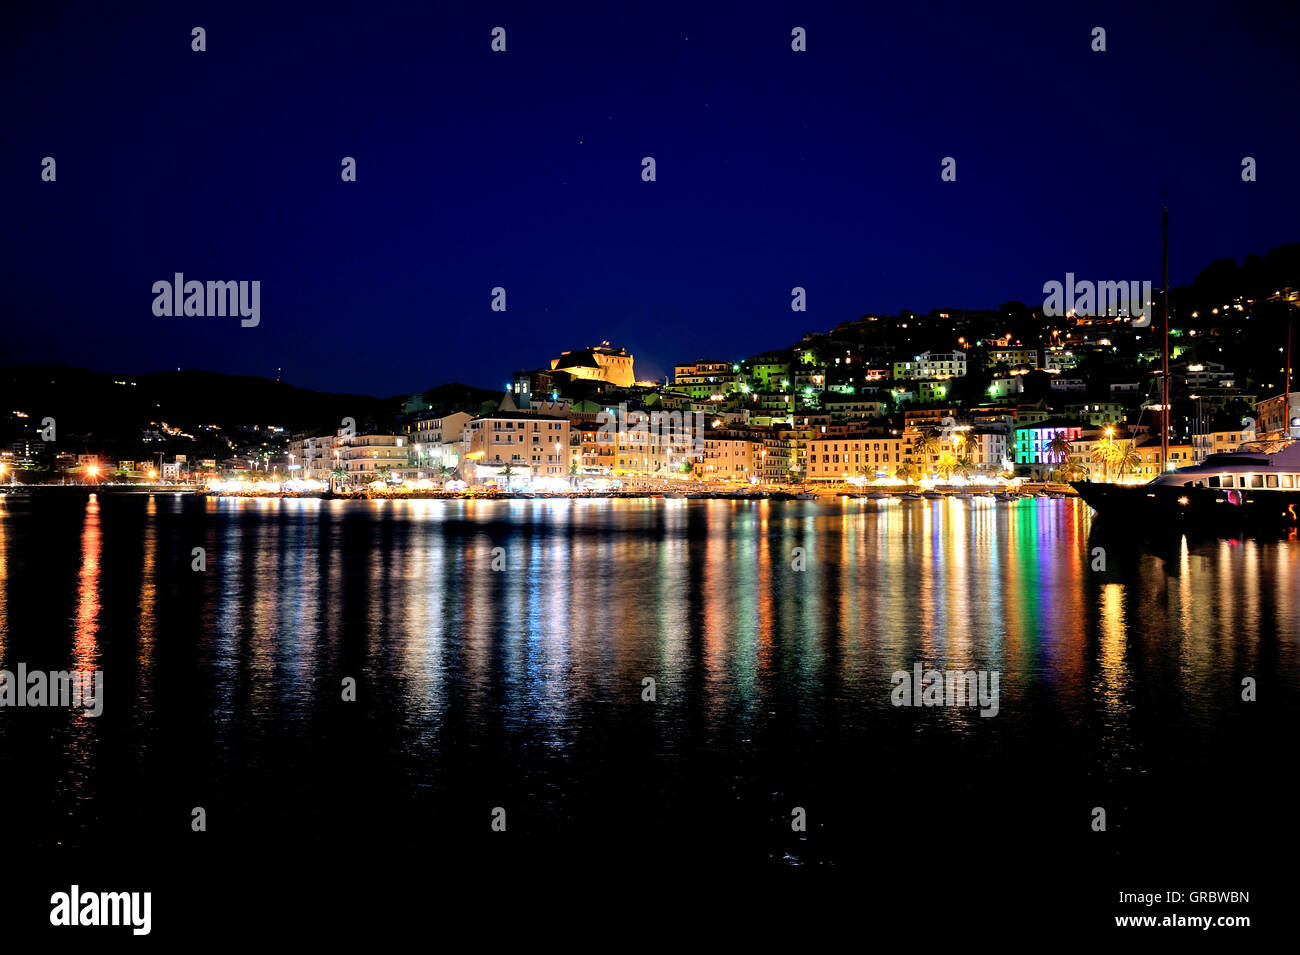 Night Shot Panorama, Colourful Lighting At Night In The Harbour Of Town Porto Santo Stefano, Coast Of Tuscany, Italy - Stock Image